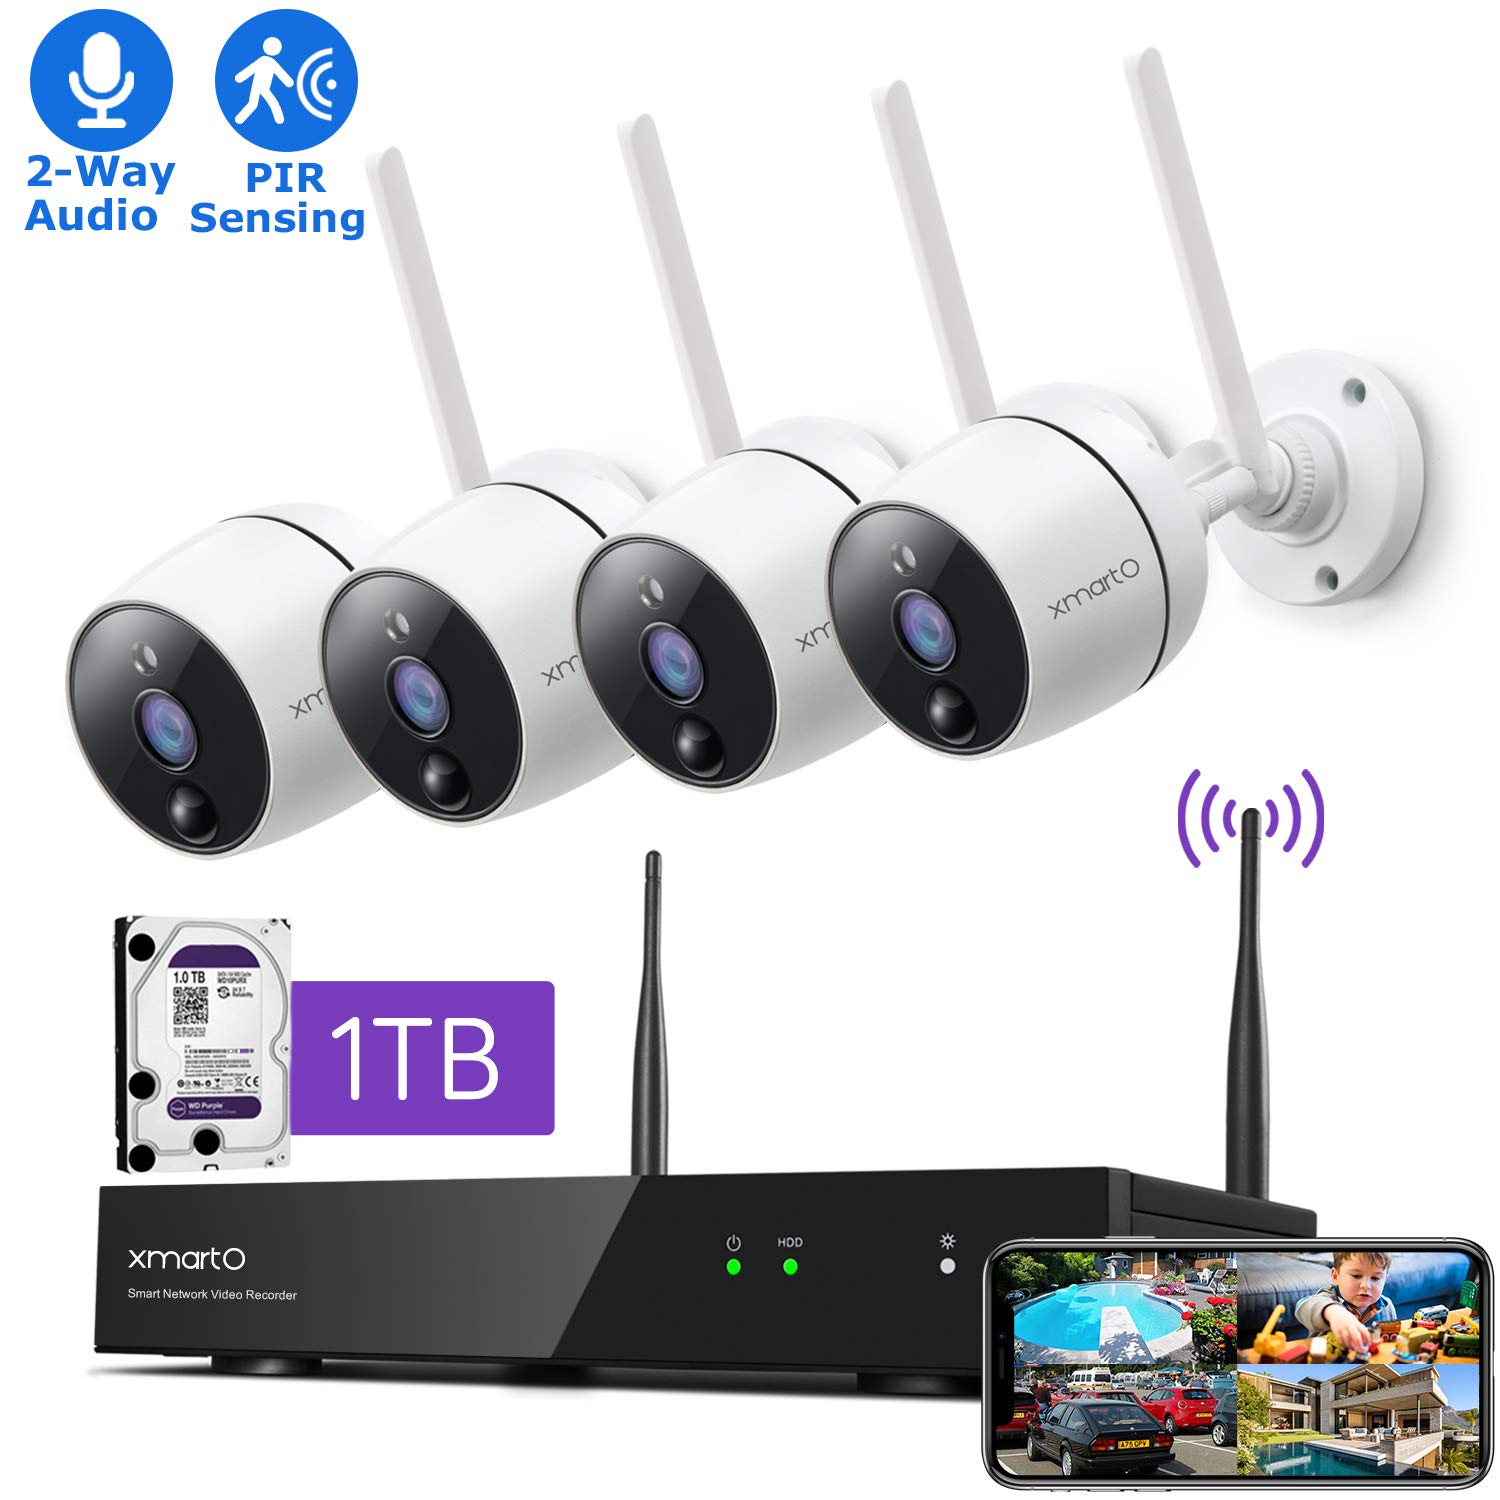 XMARTO Wireless Security Camera System - 8CH Expandable NVR with 4 1080p WiFi Security Cameras - PIR & Video Dual Motion Detection, Video Clip Alert, 2-Way Audio, IR Night Vision Weatherproof, 1TB HDD by xmartO